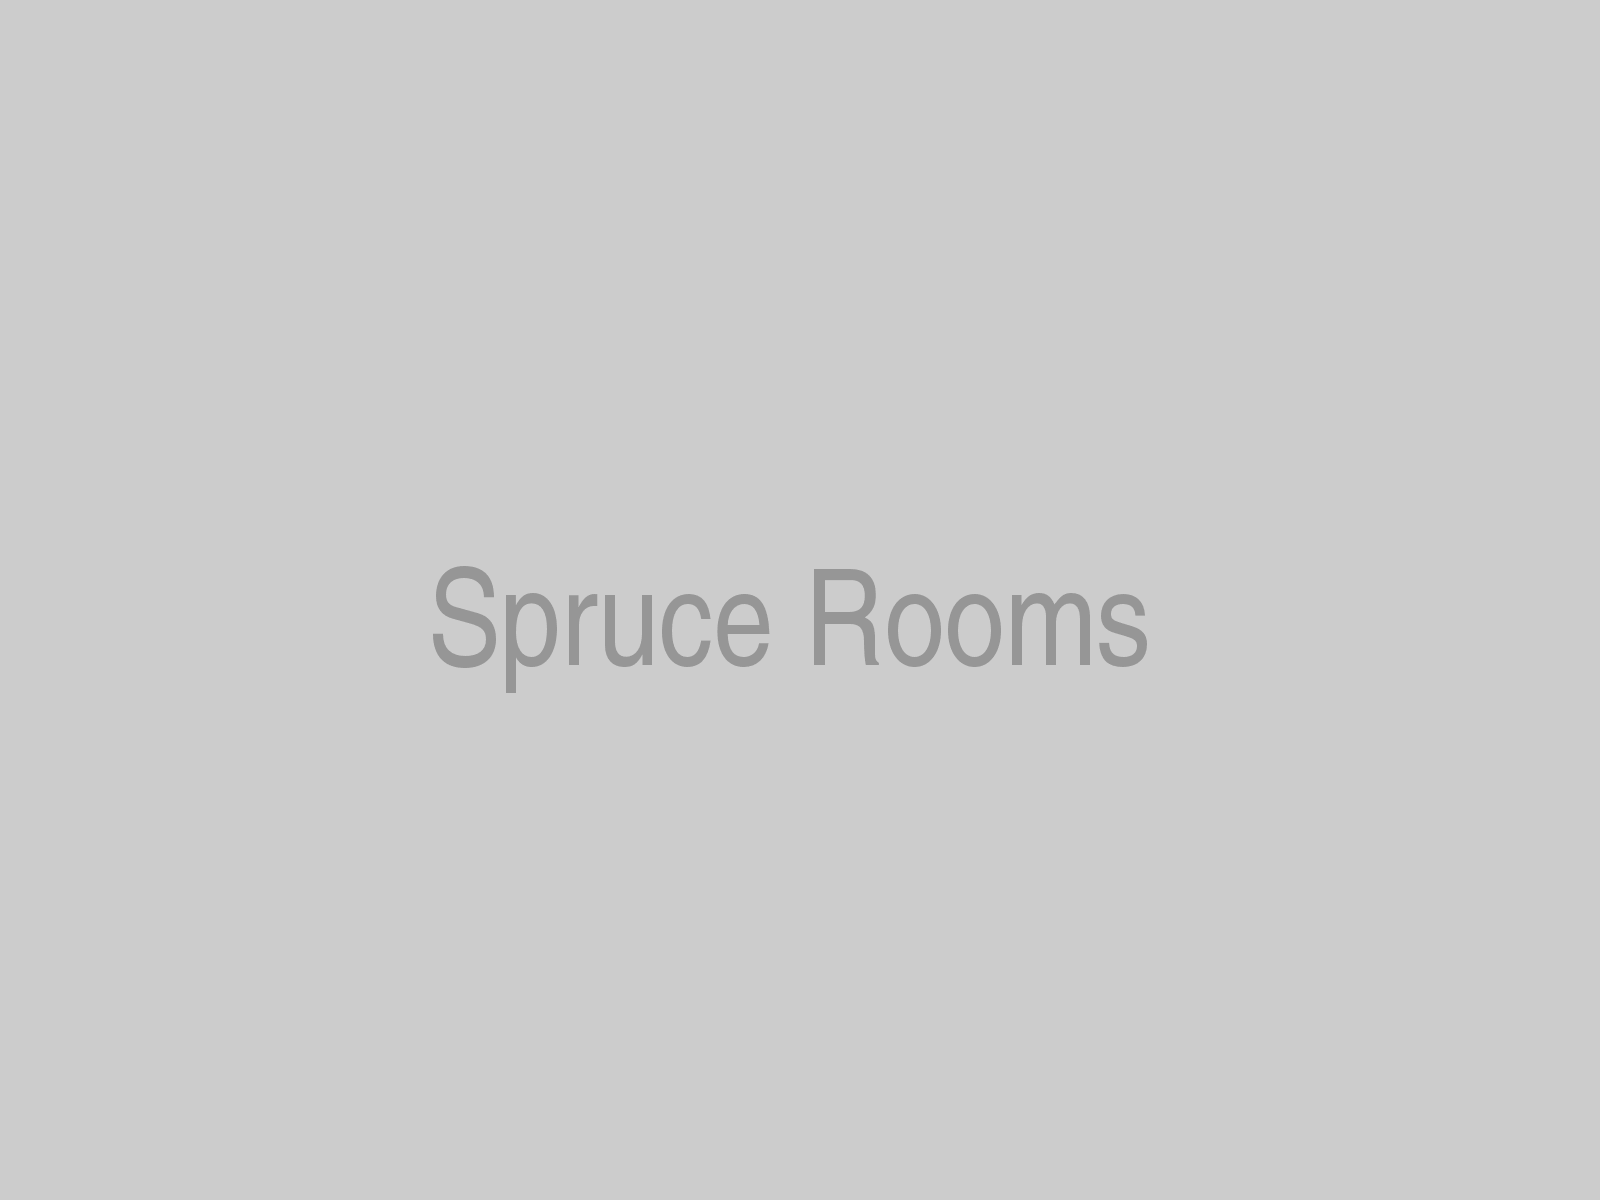 Spruce Rooms